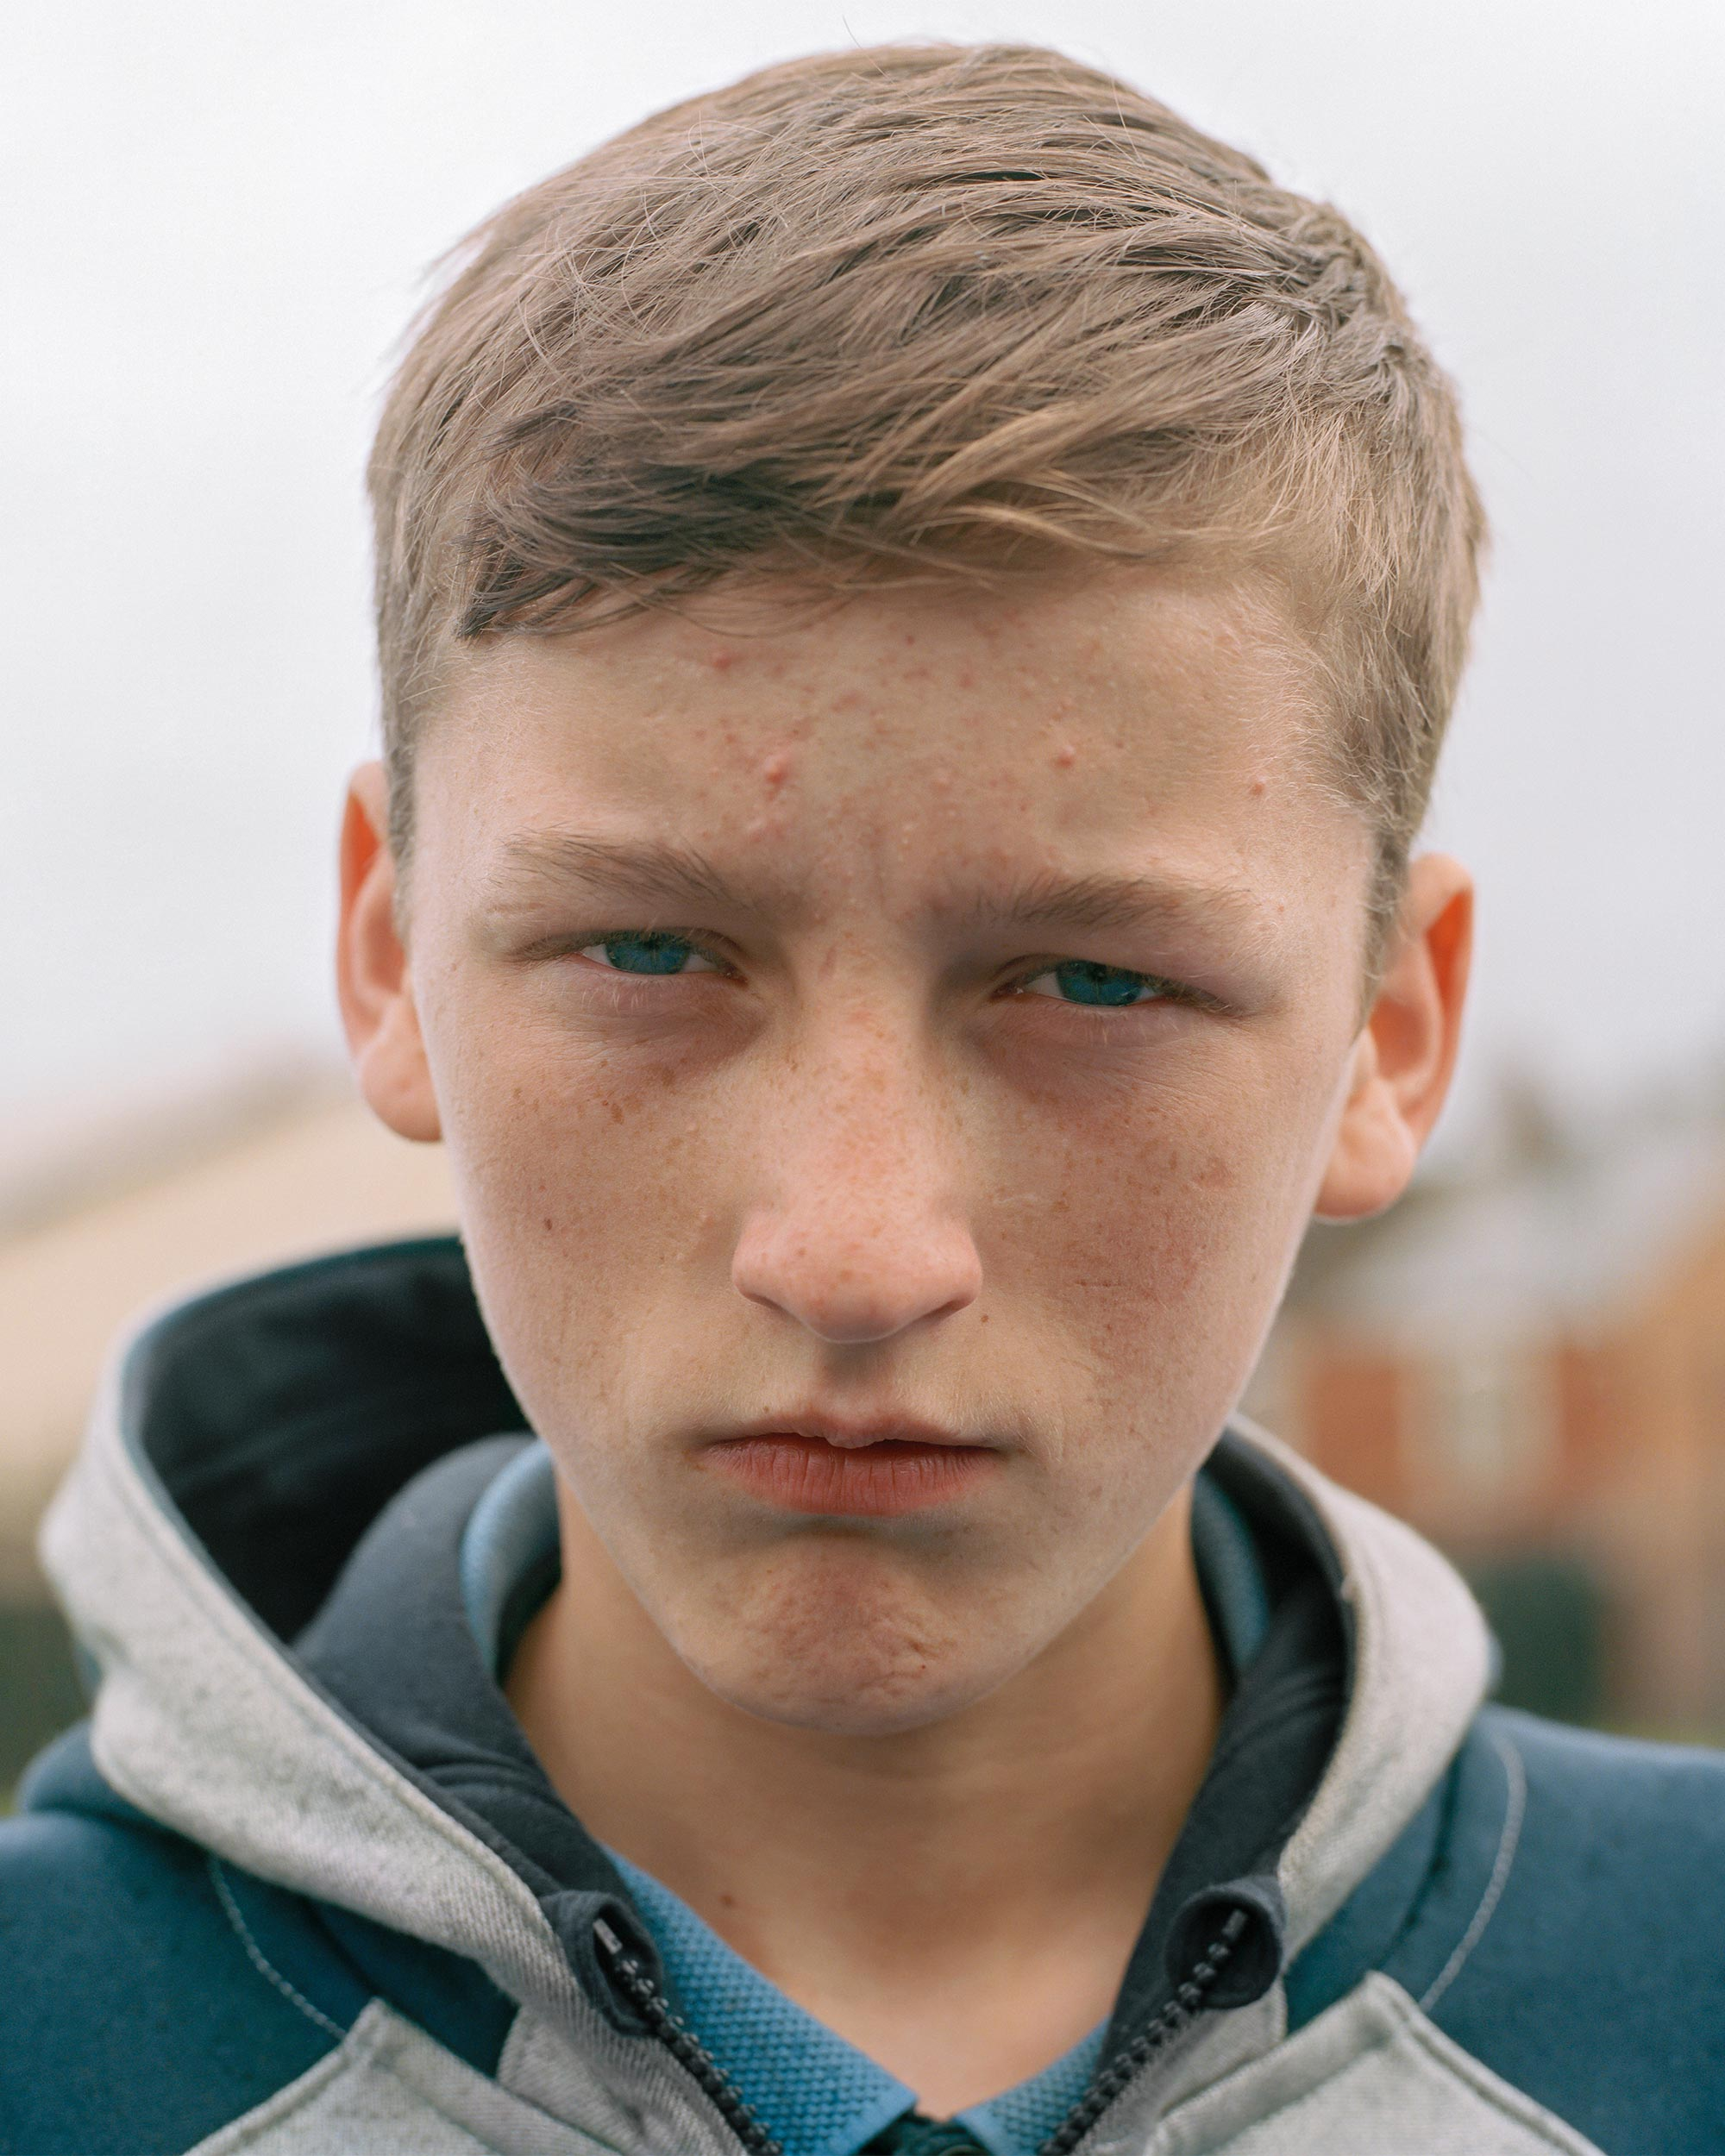 photograph of boy wearing hoodie outside